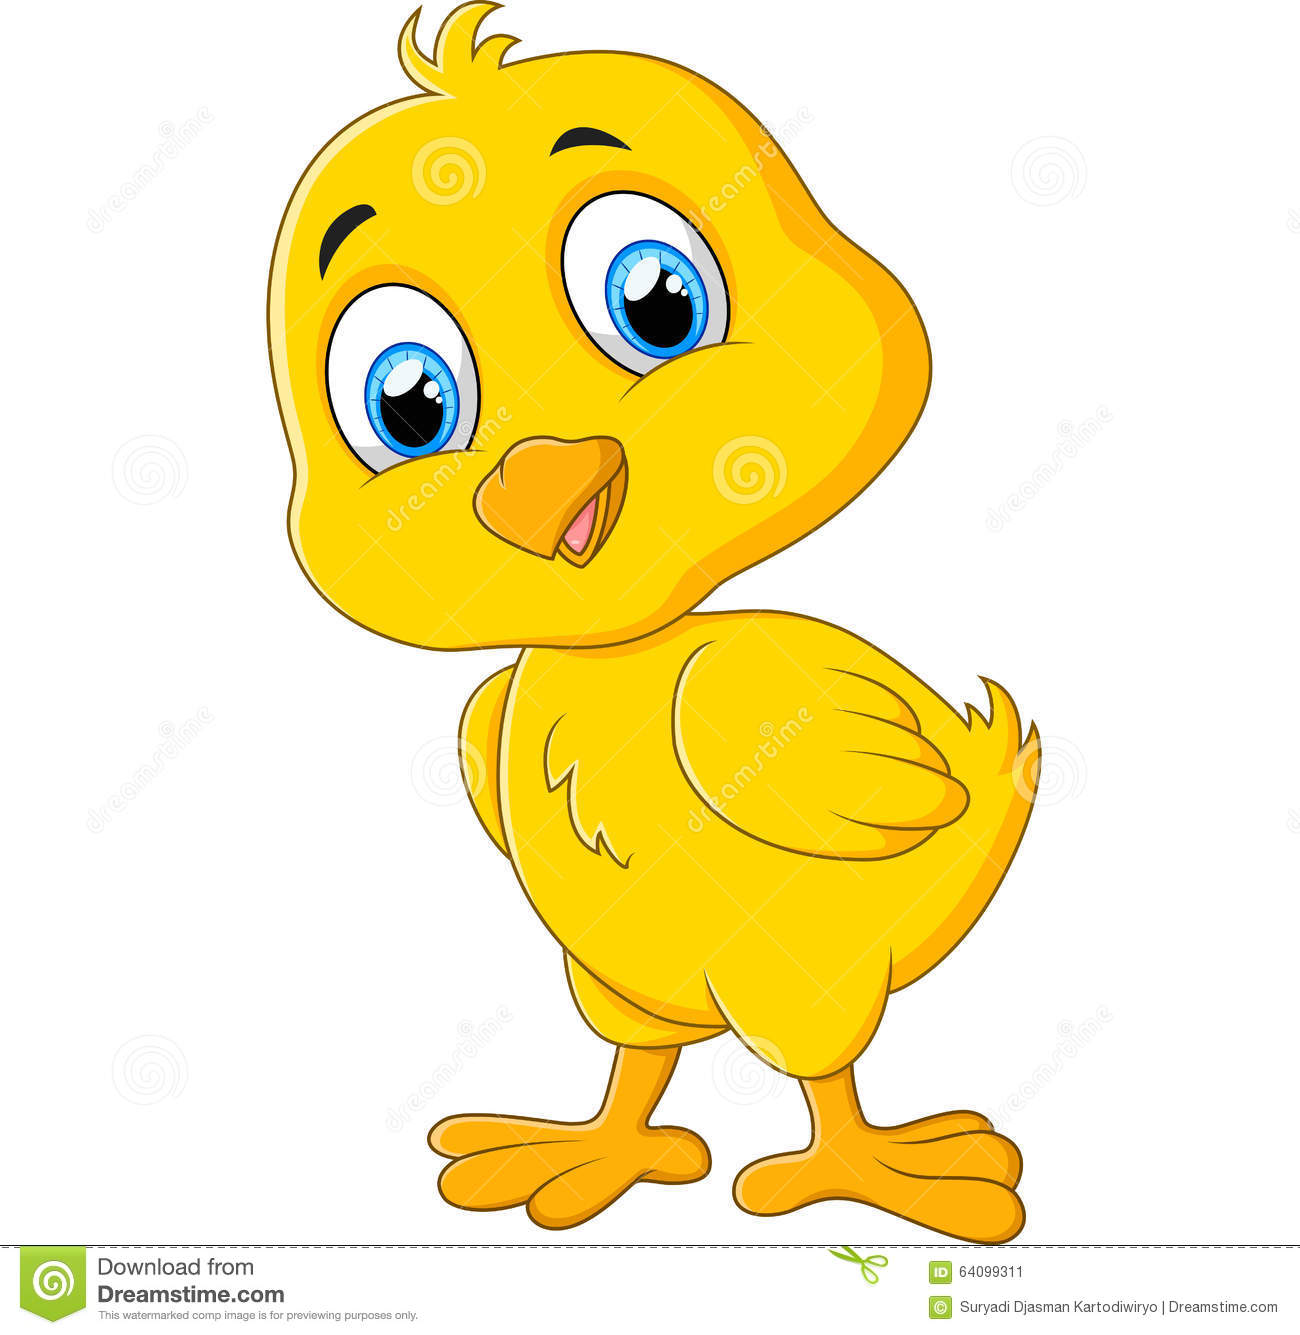 Cute Chicken Cartoon Stock Vector - Image: 64099311